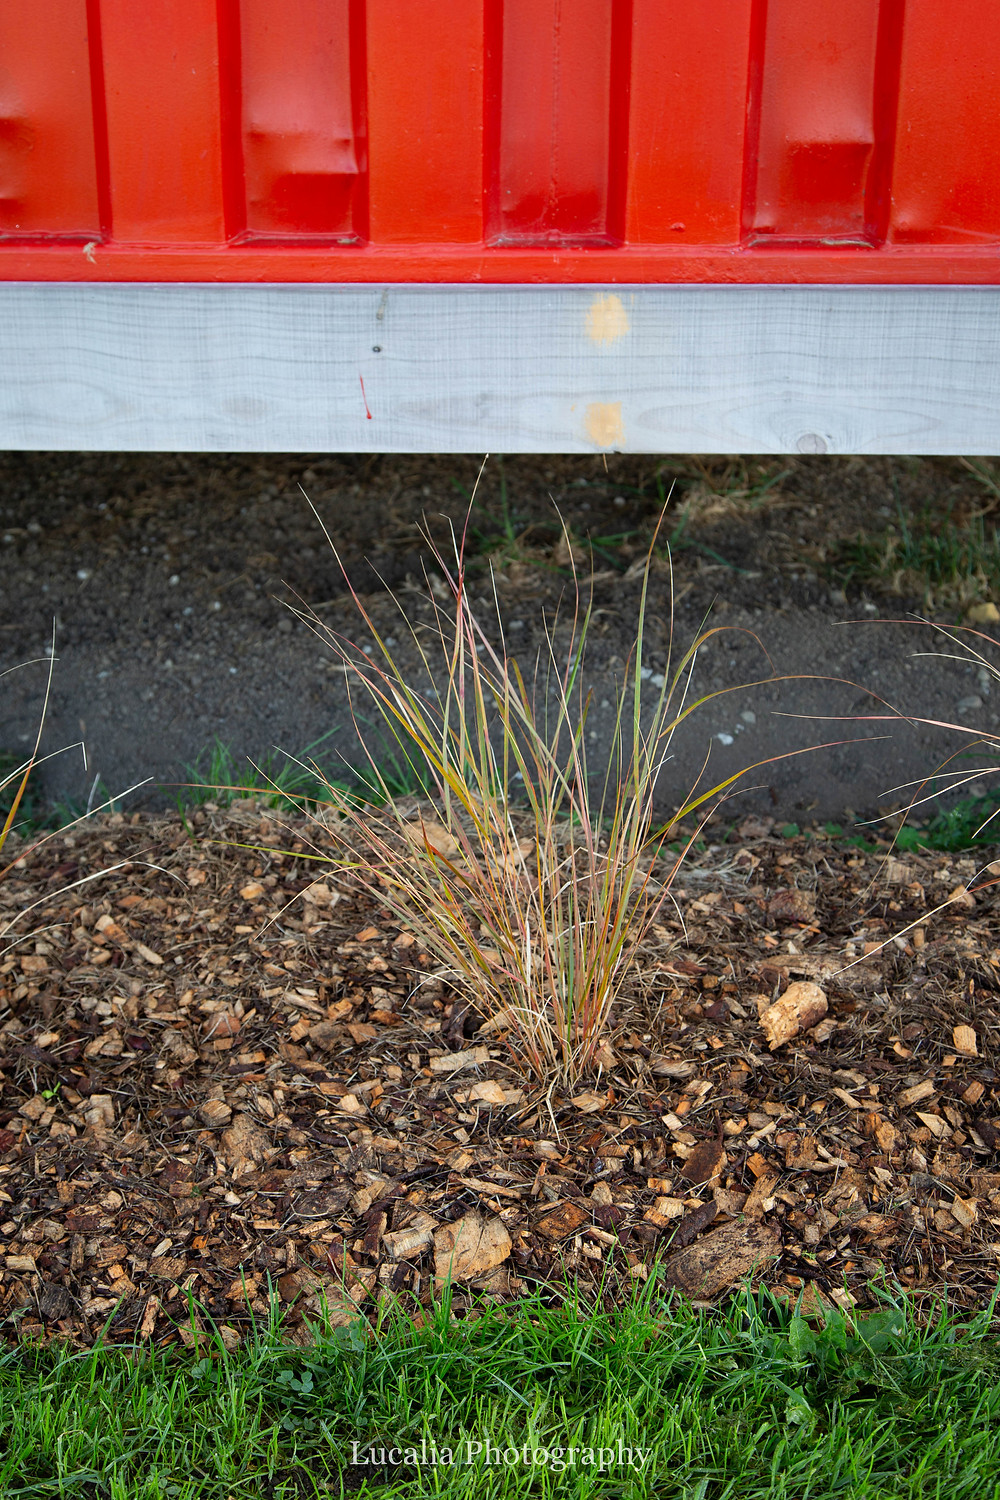 planting around the container home to hide underneath, Wairarapa